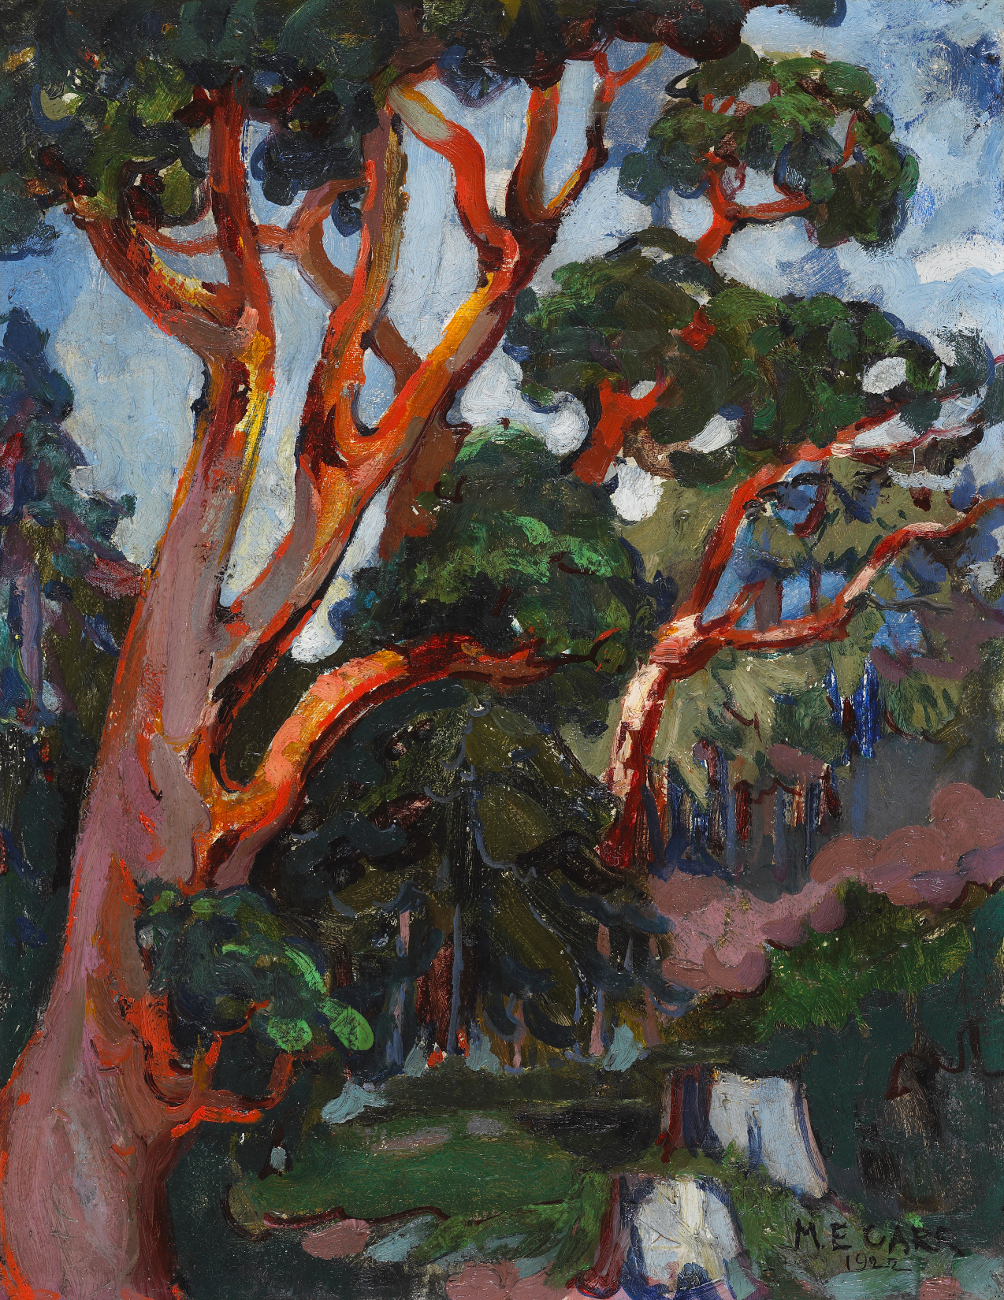 Emily Carr, Arbutus Tree, 1922, oiil on canvas, 46 x 36 cm, National Gallery of Canada, Ottawa, Thomas Gardiner Keir Bequest, 1990, Photo © NGC